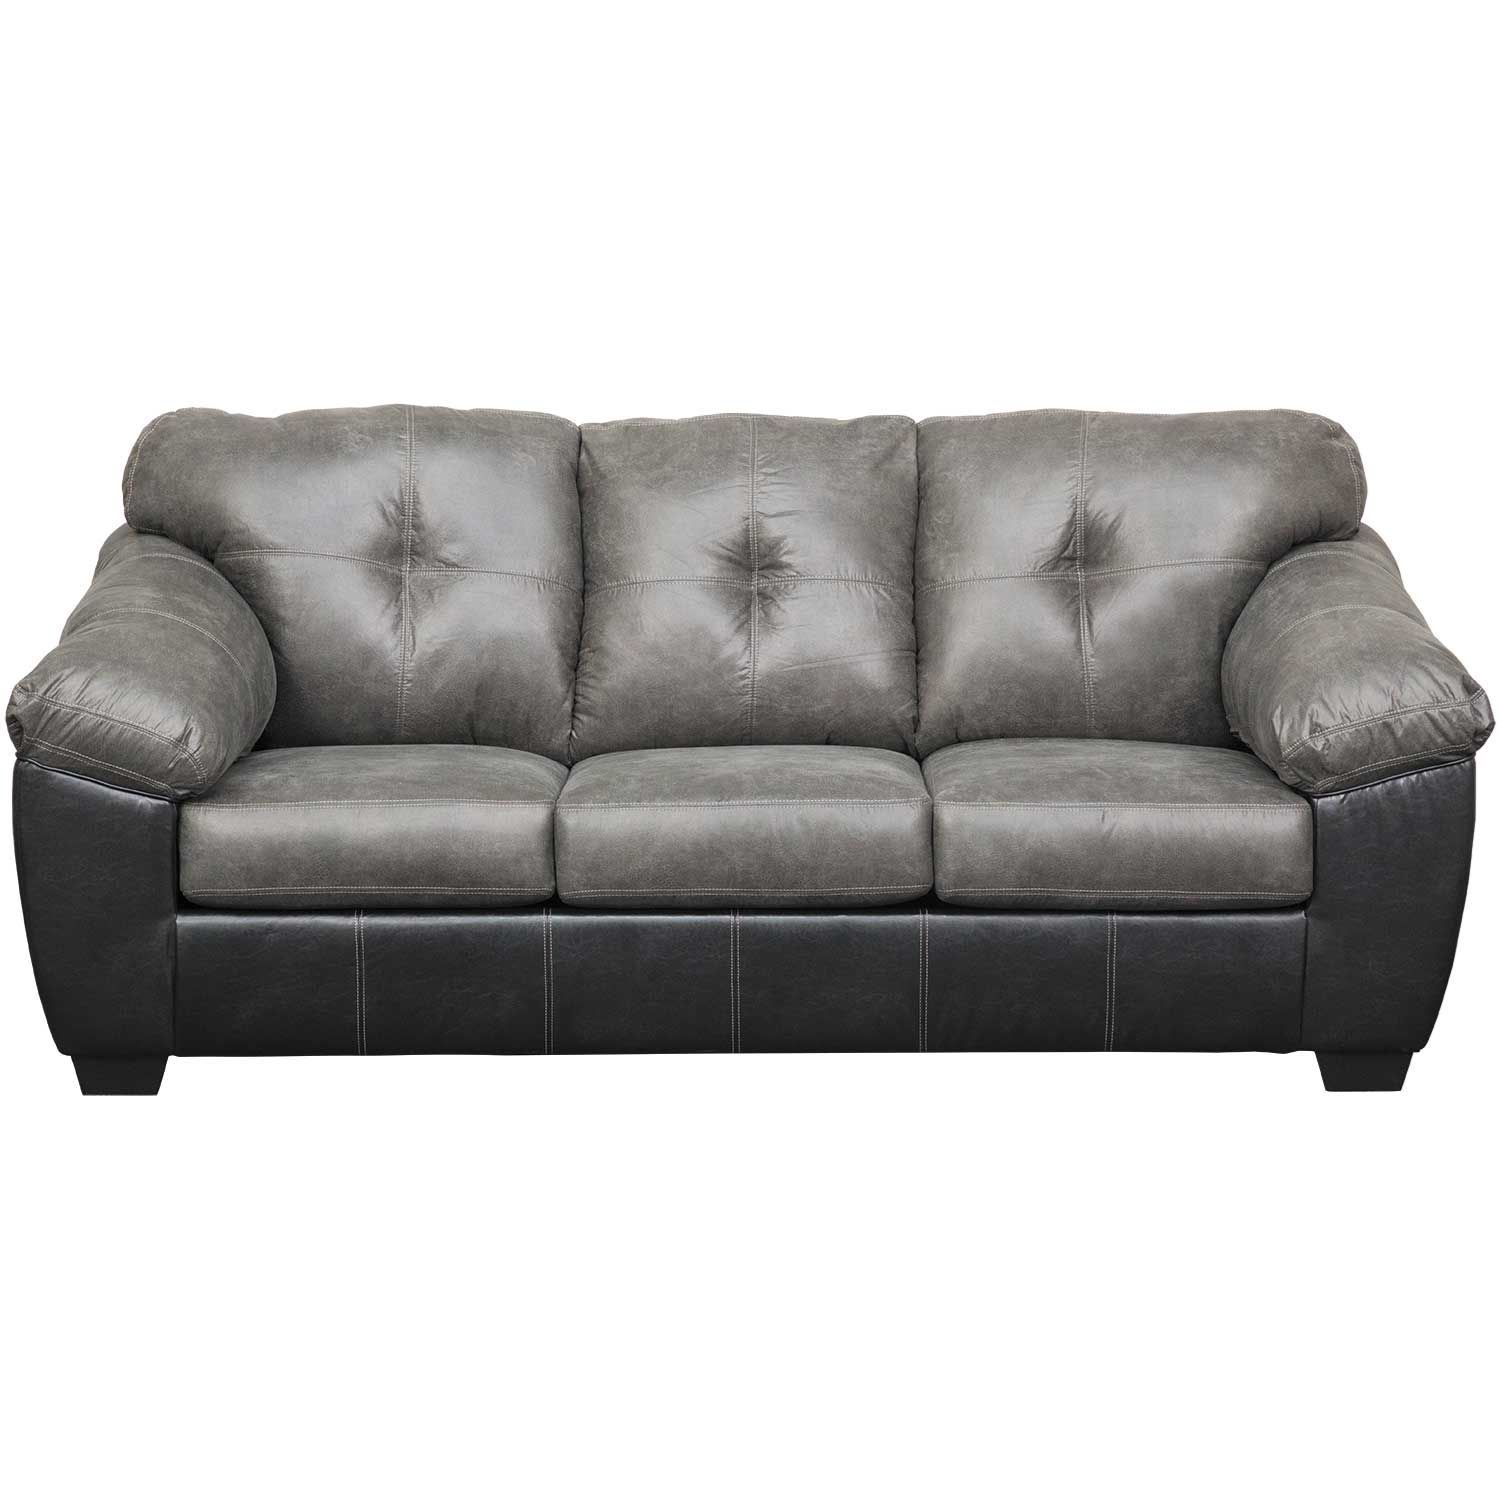 Picture of Gregale Slate Two-Tone Sofa